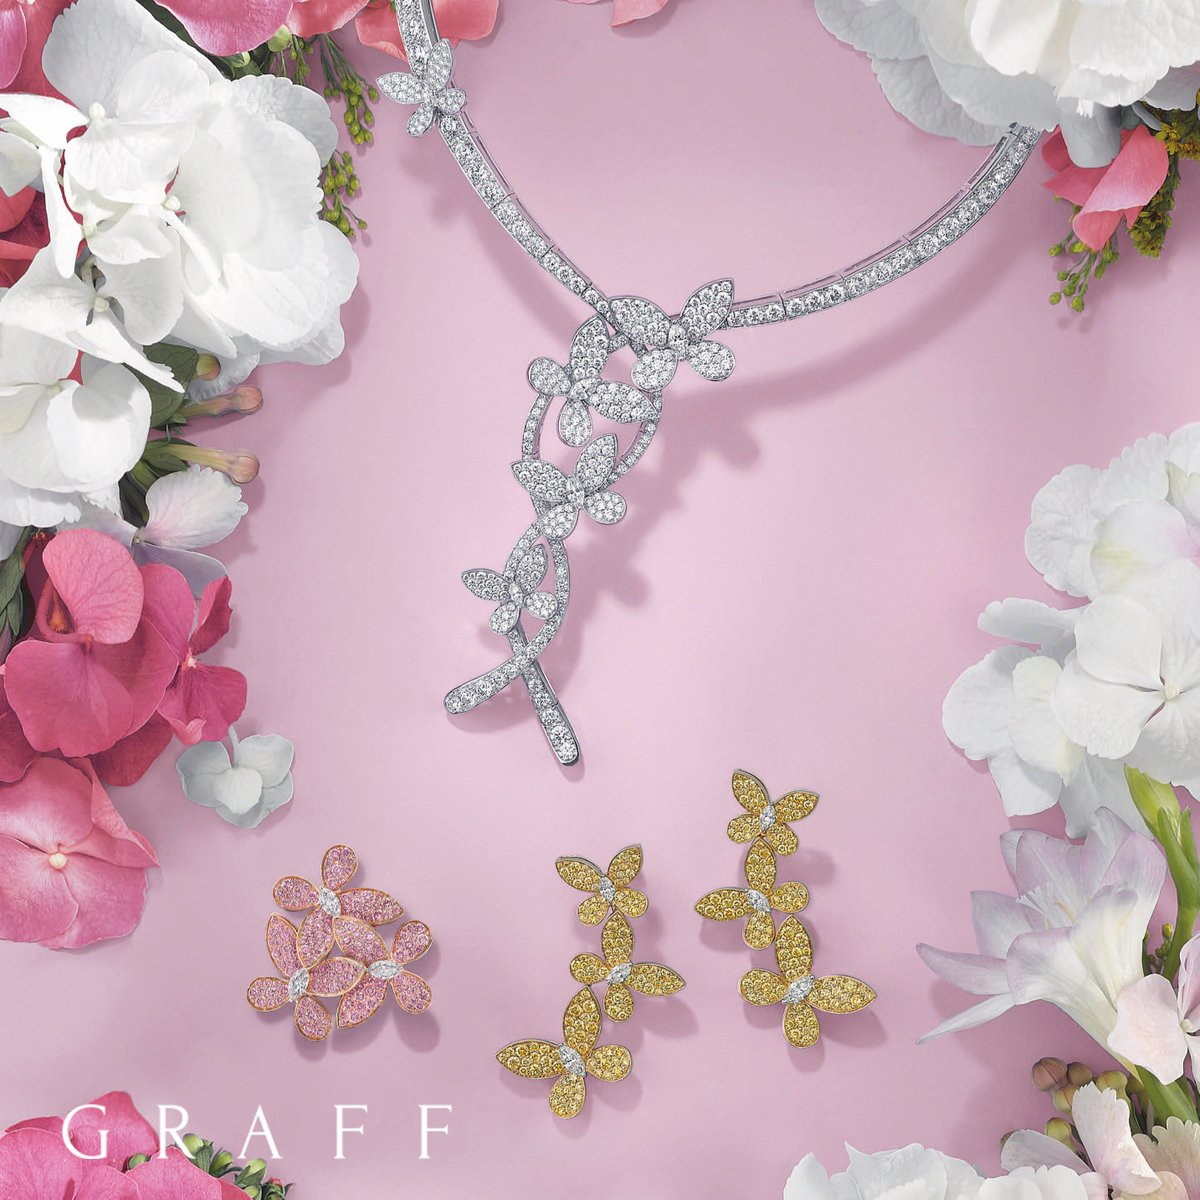 Happy International Women's Day from the House of Graff! #GraffDiamonds #InternationalWomensDay https://t.co/DbGIaNrjSg